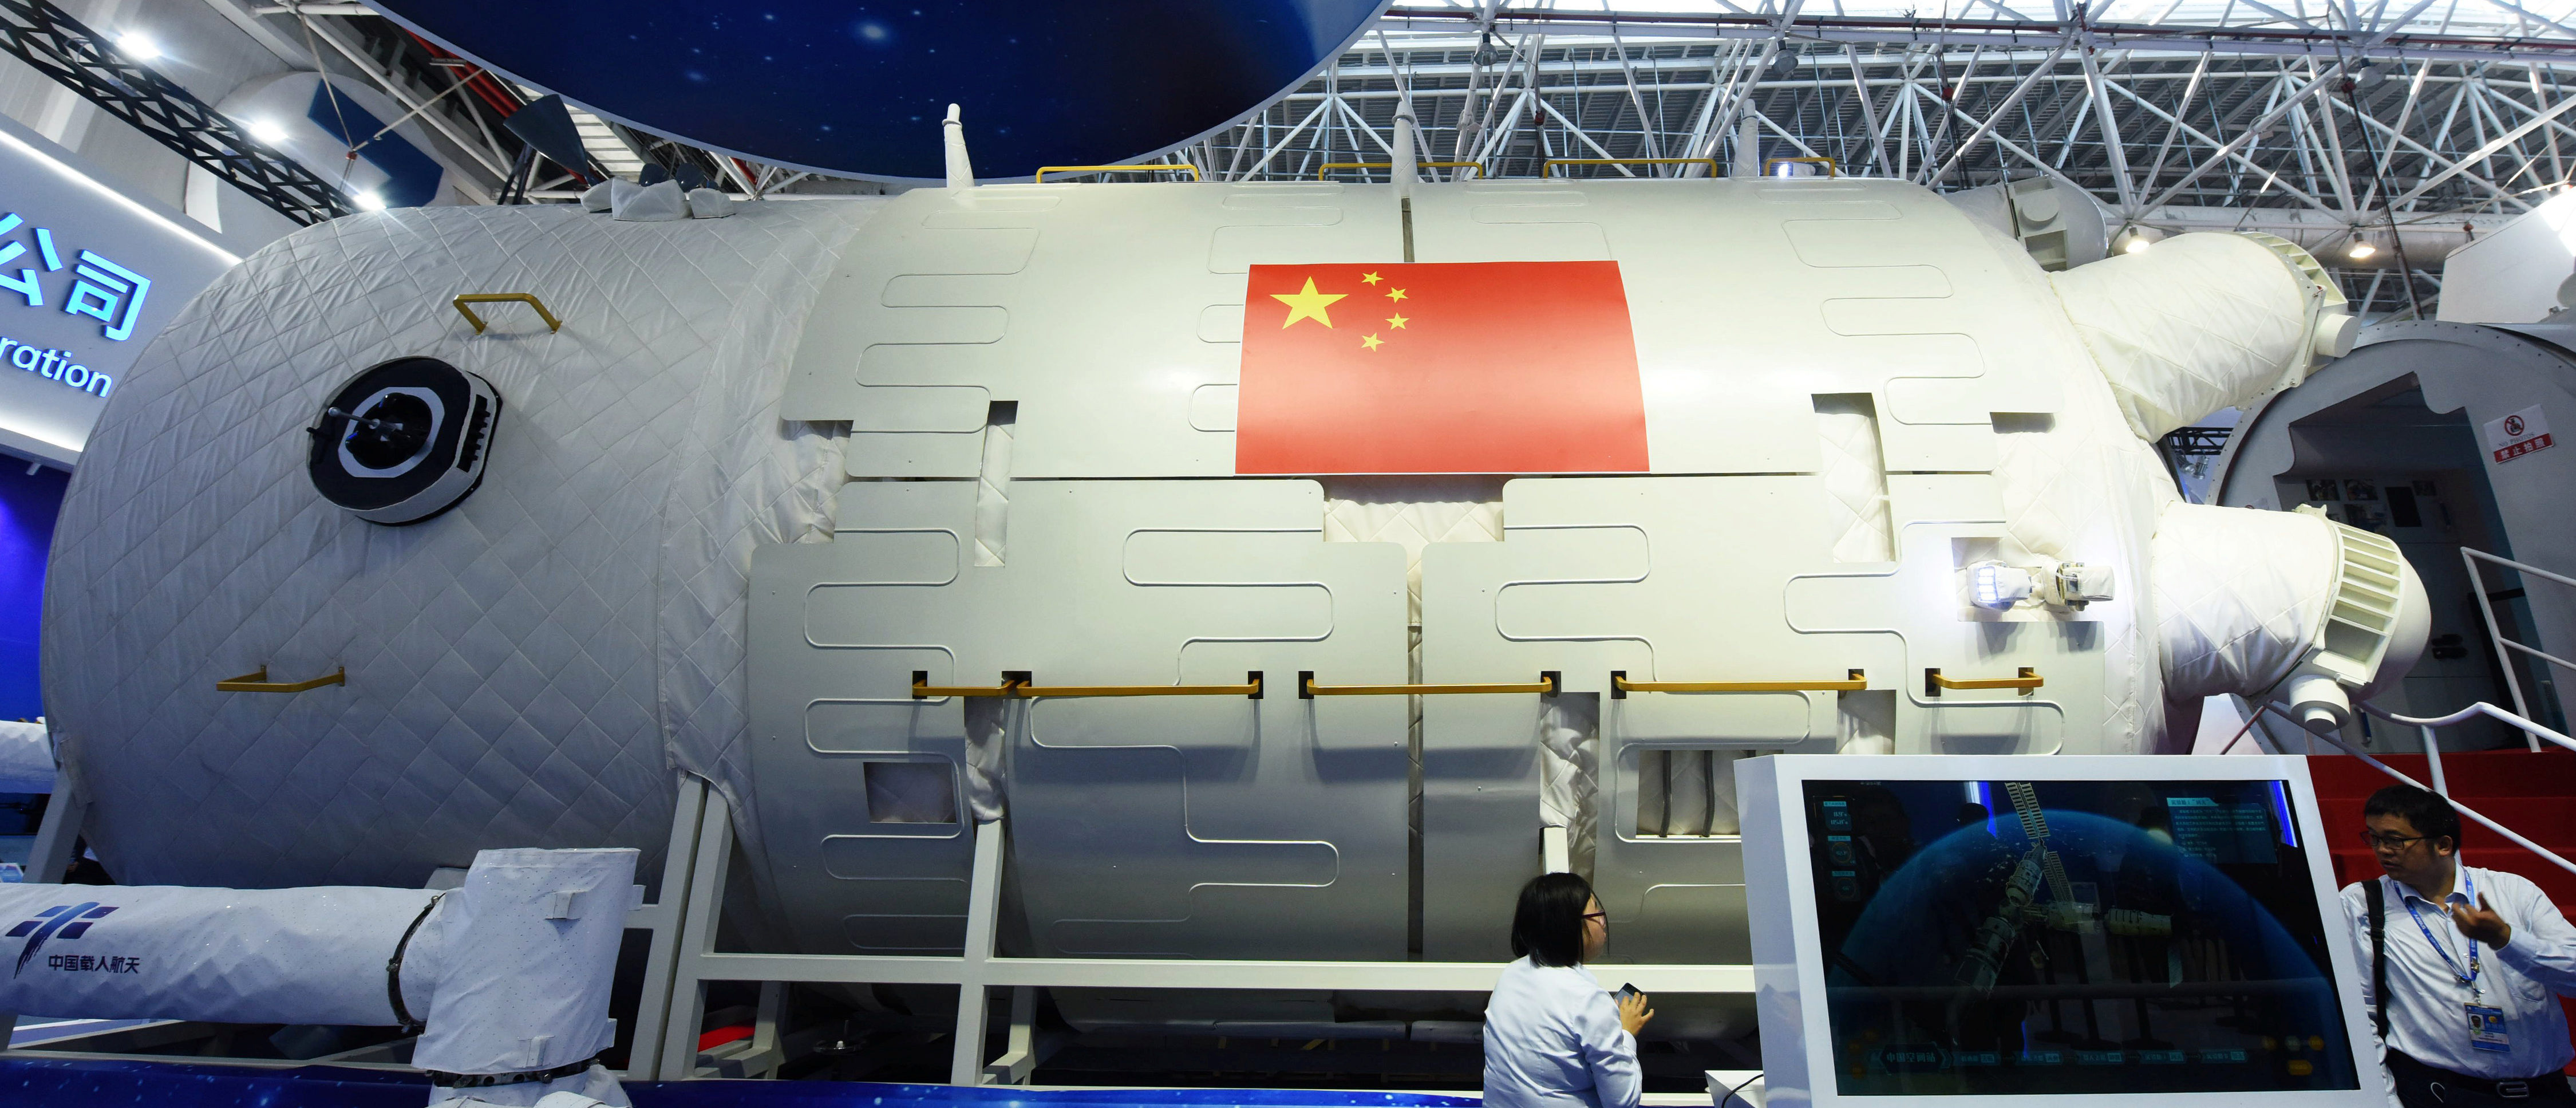 A full-size model of Chinese space station core module Tianhe is seen at the China International Aviation and Aerospace Exhibition, or Zhuhai Airshow, in Zhuhai, Guangdong province, China November 7, 2018. REUTERS/Stringer